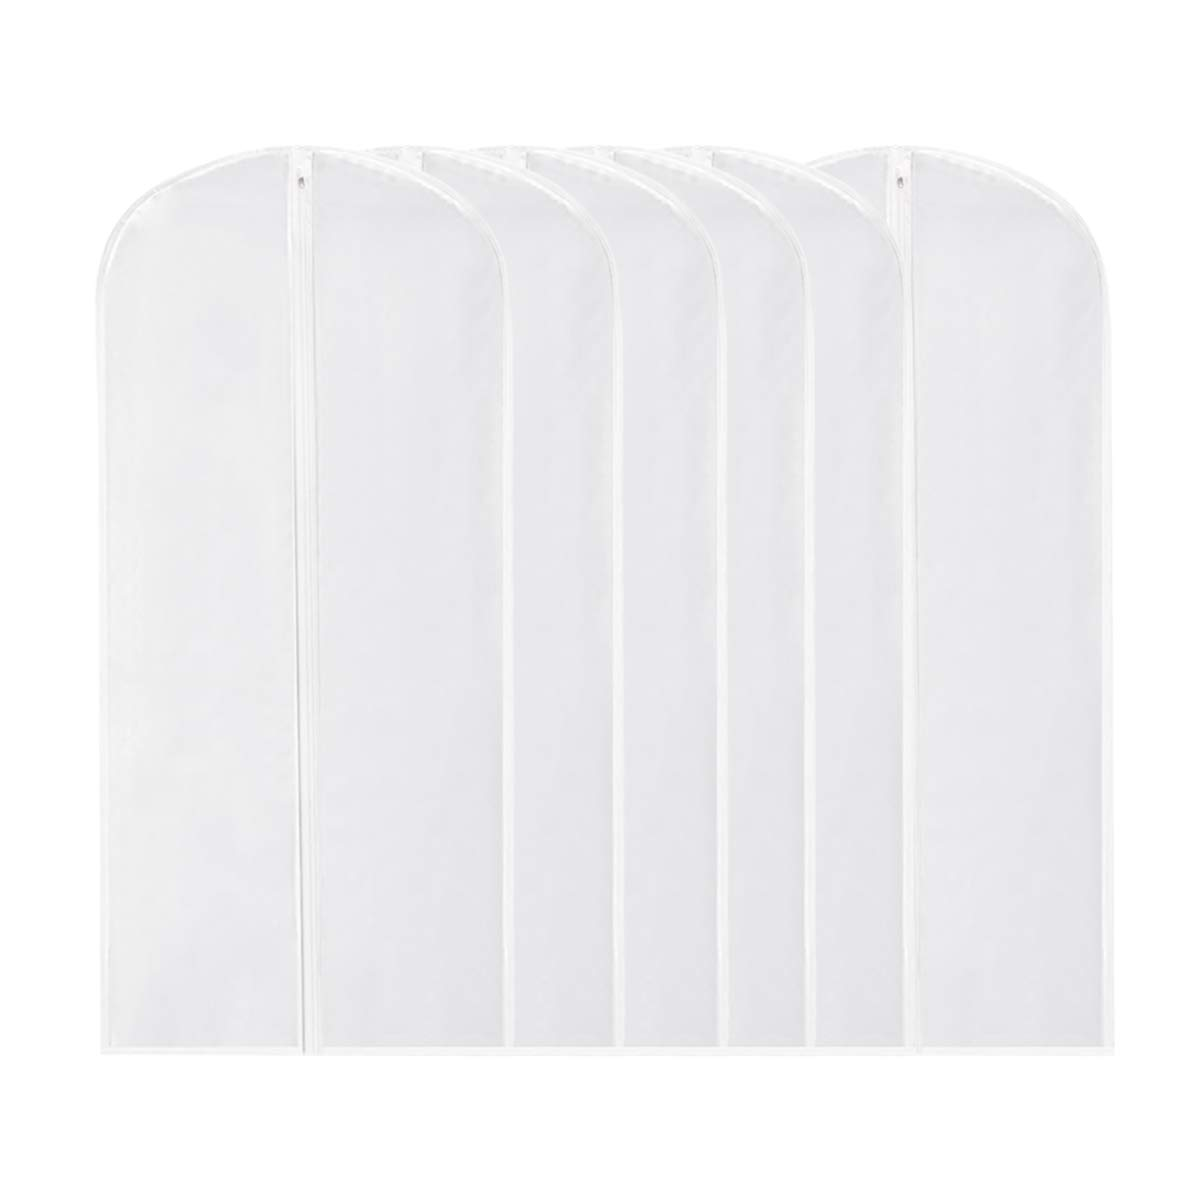 Garment Bag Clear,54 Inch Long Dress Moth Proof Garment Bags Dust Cover White Breathable Full Zipper for Dance Clothes Closet Pack of 6